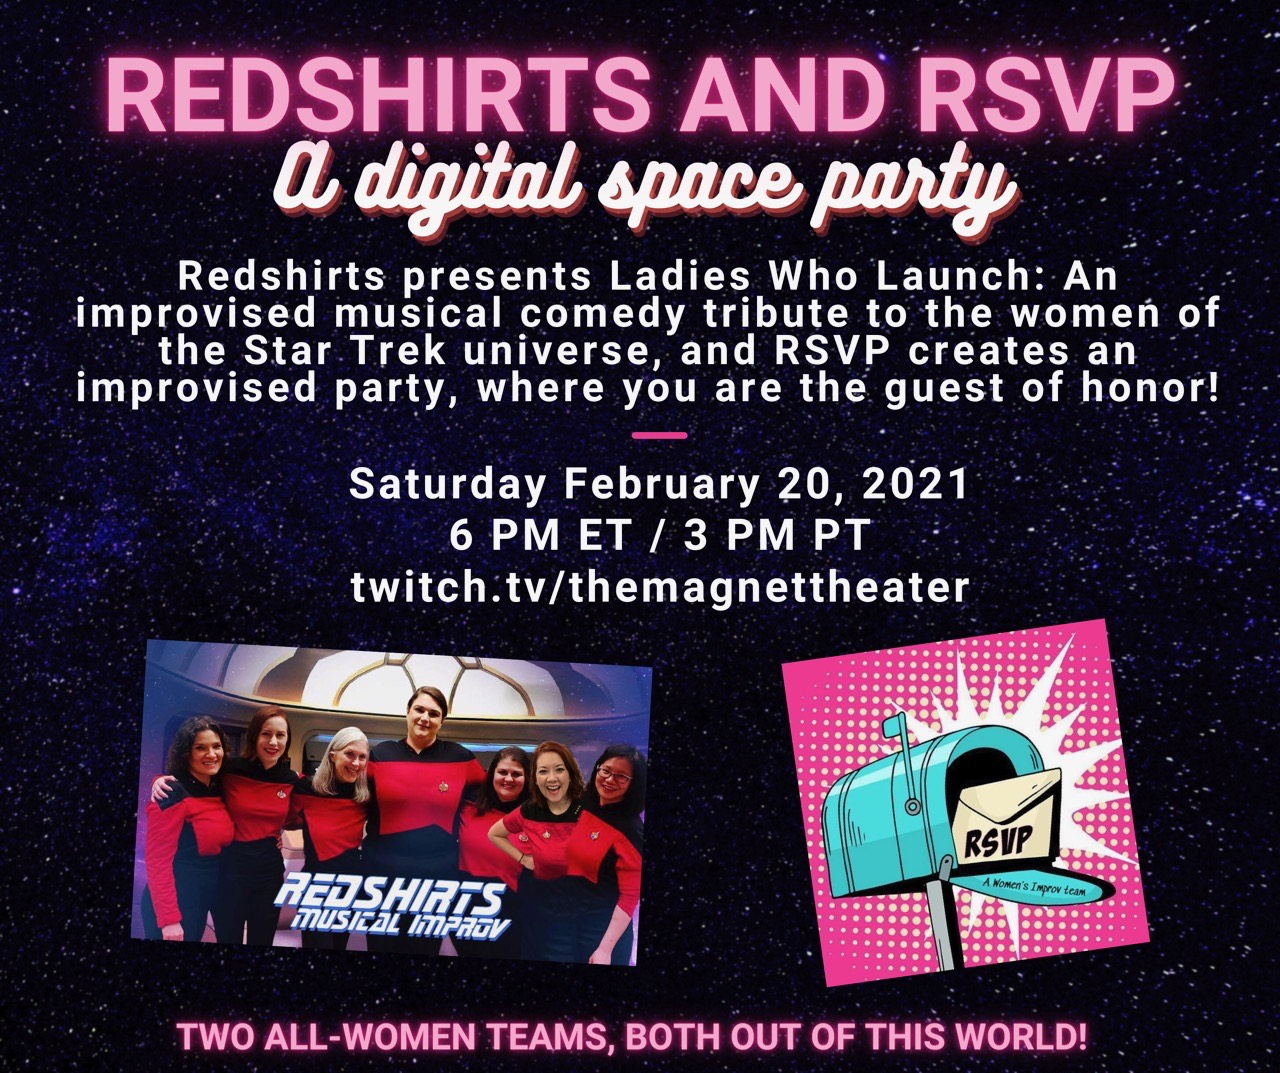 Red Shirts and RSVP: A Digital Space Party